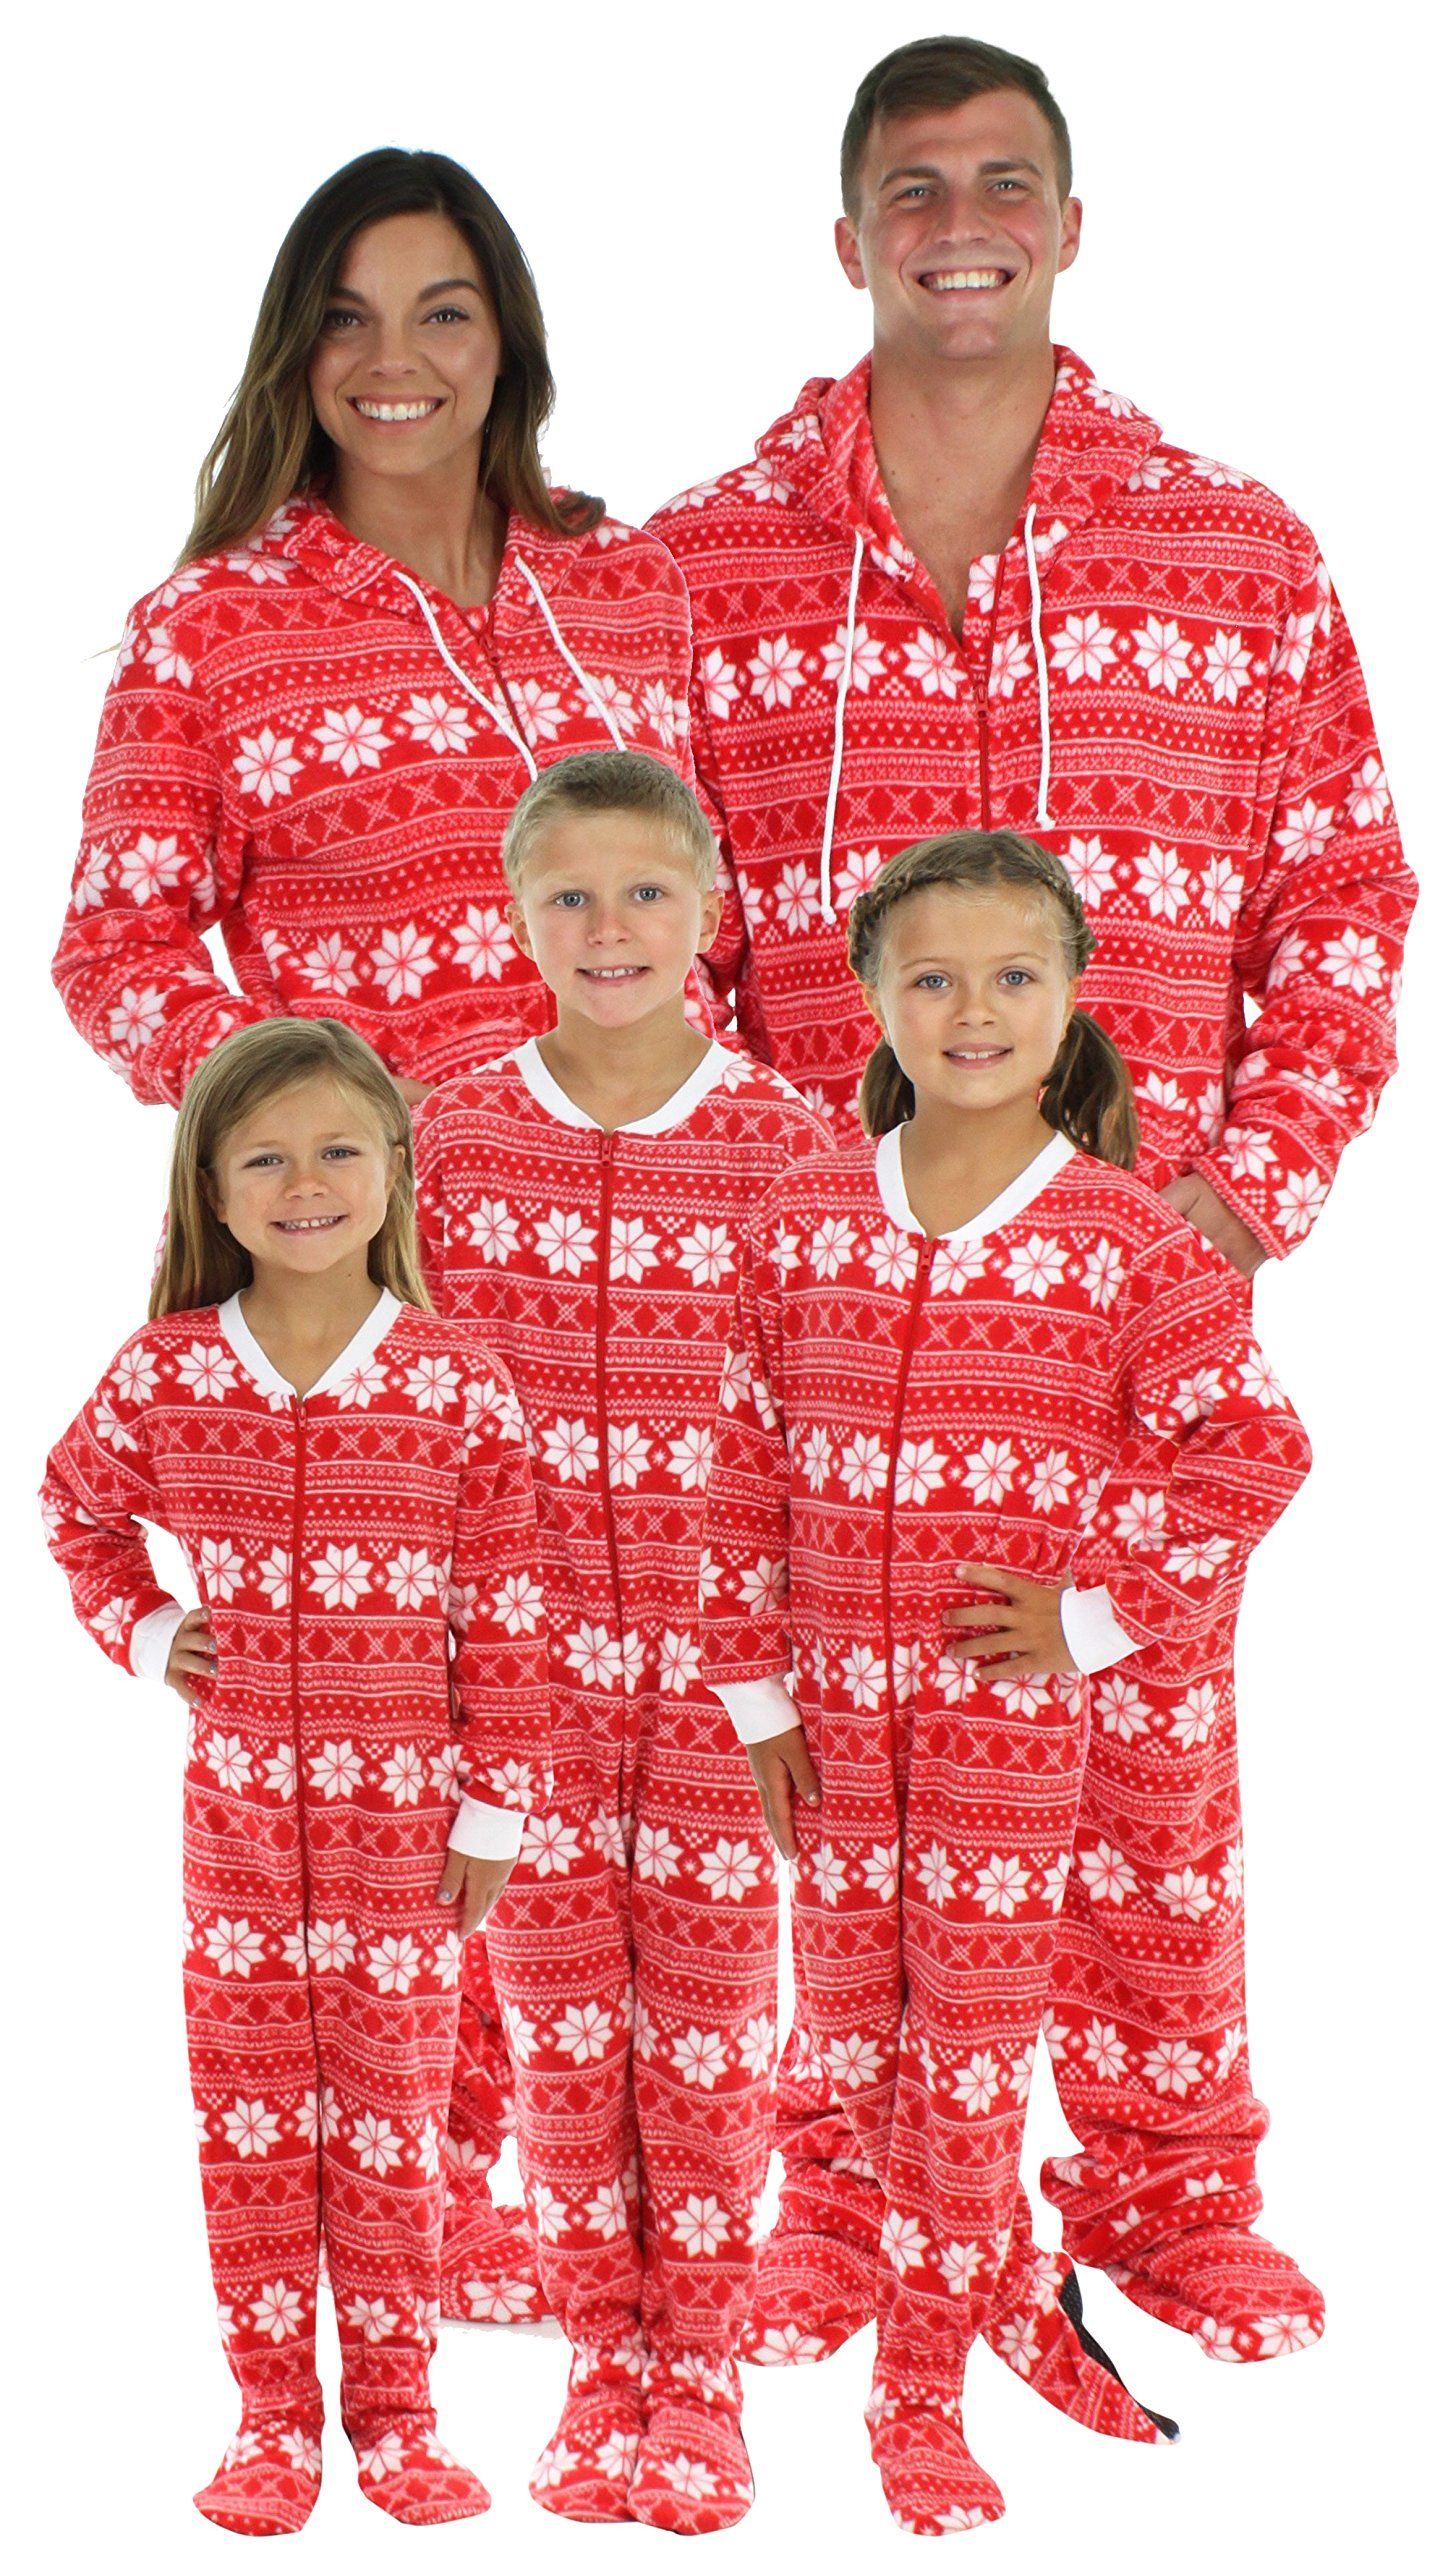 SleepytimePjs Family Matching Red Snowflake Onesie PJs Footed Pajamas  Women s Red Snowflake – (STM17- 8a02b9fc5